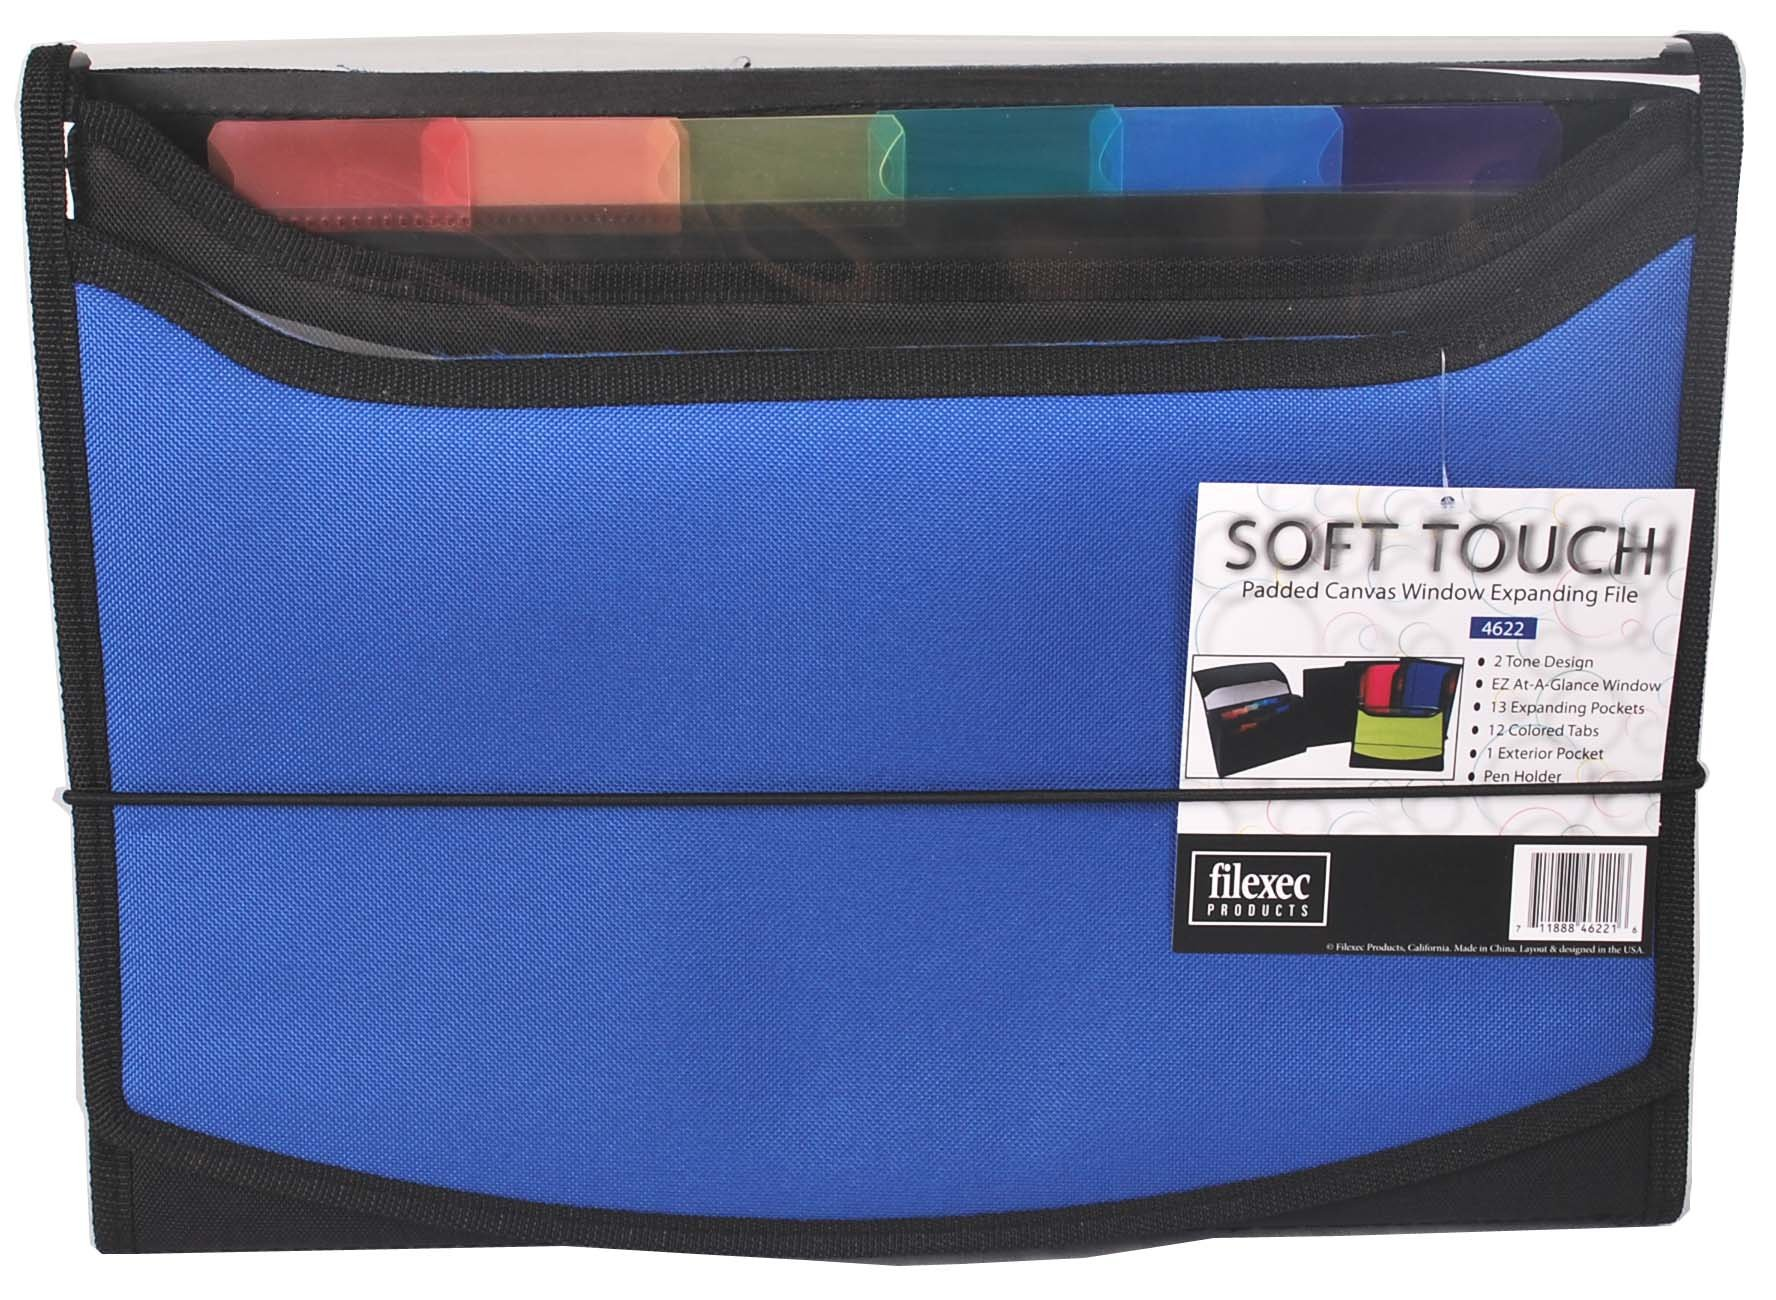 Filexec Soft Touch Padded Canvas Window Expanding File, 13 Pockets, 1 Pack, Blue (46221-6)